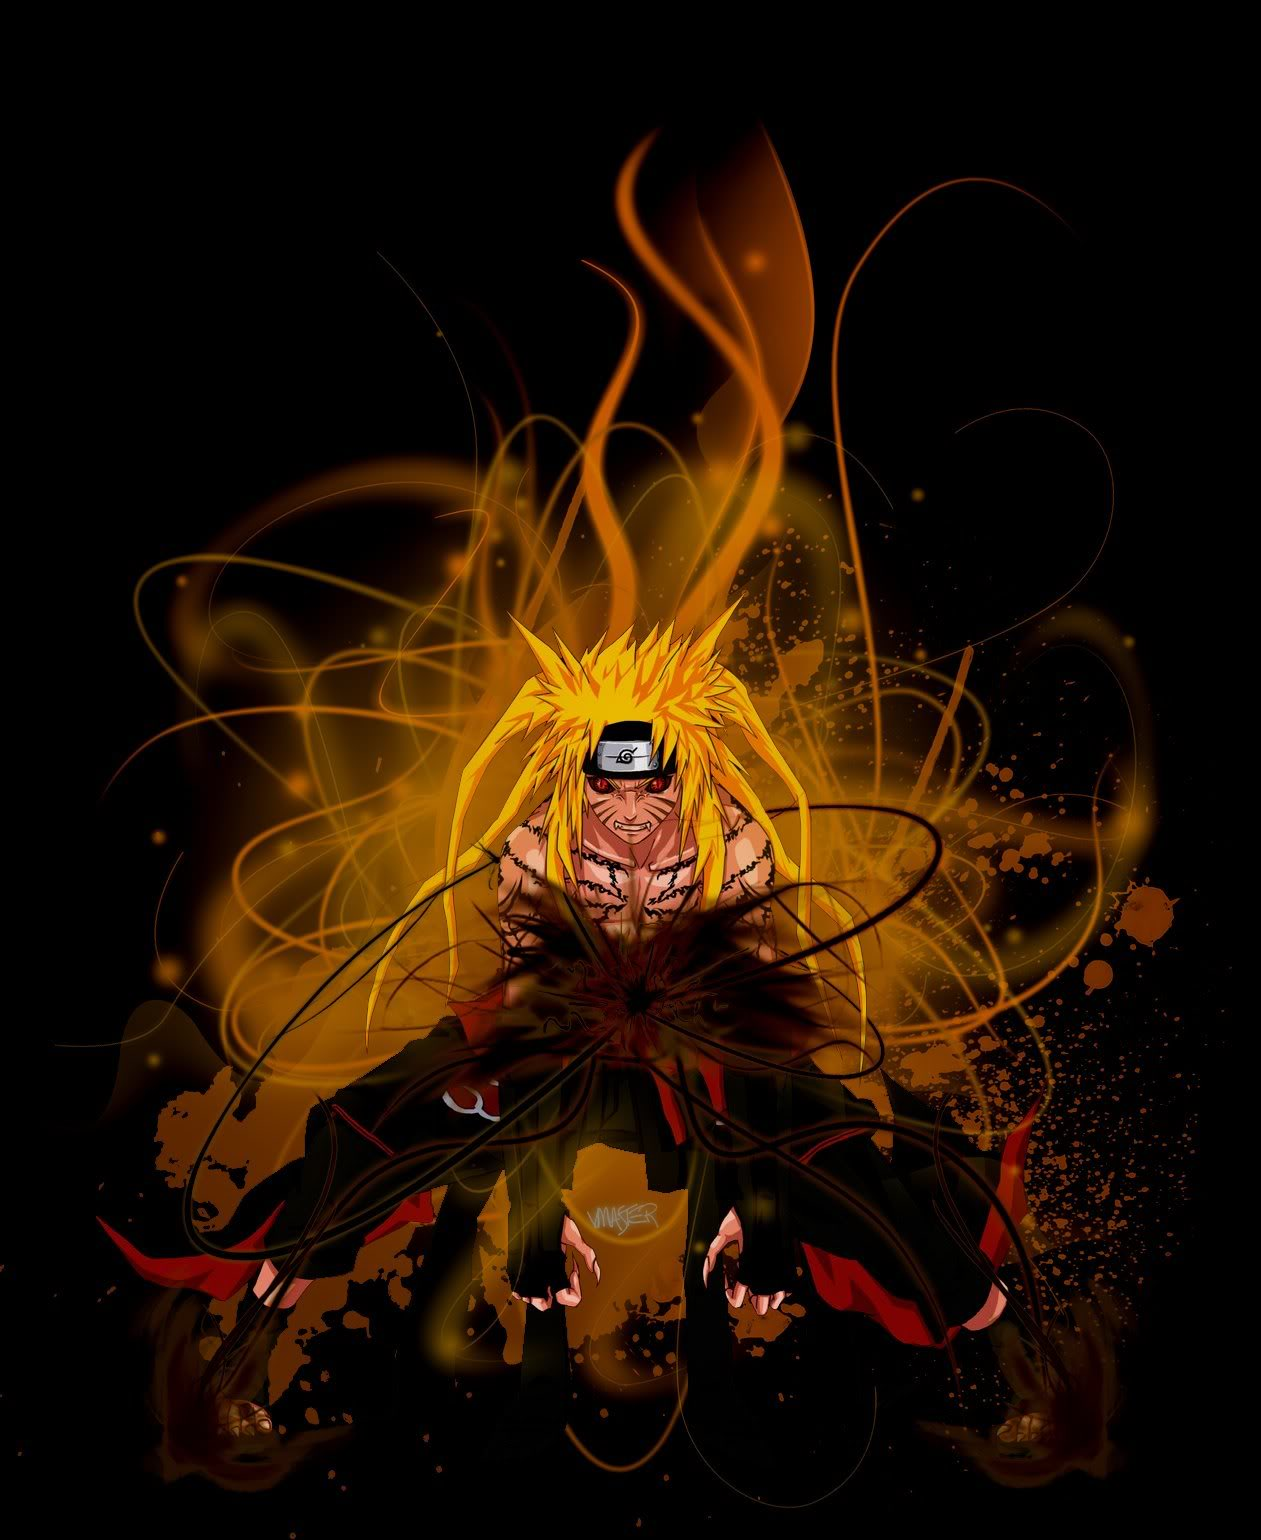 1261x1540 Naruto Shippuuden images naruto shippuden akatsuki HD wallpaper and ...